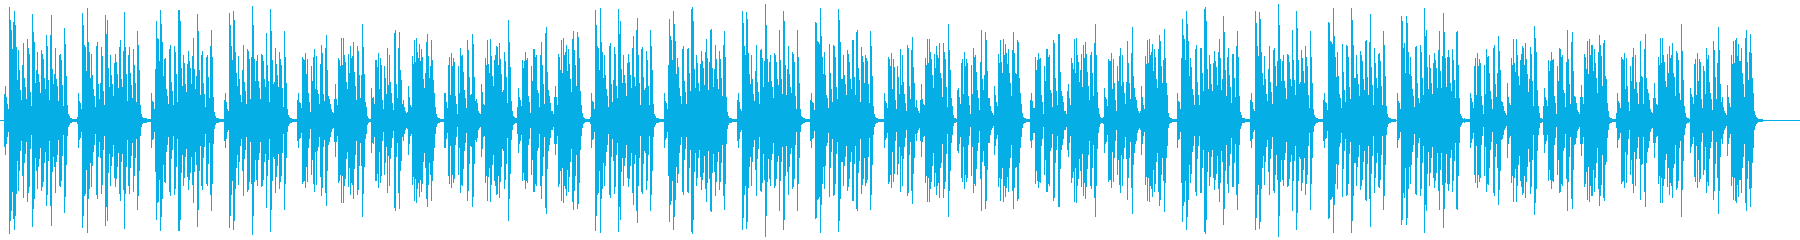 Relaxing, everyday, comical, marimba's reproduced waveform